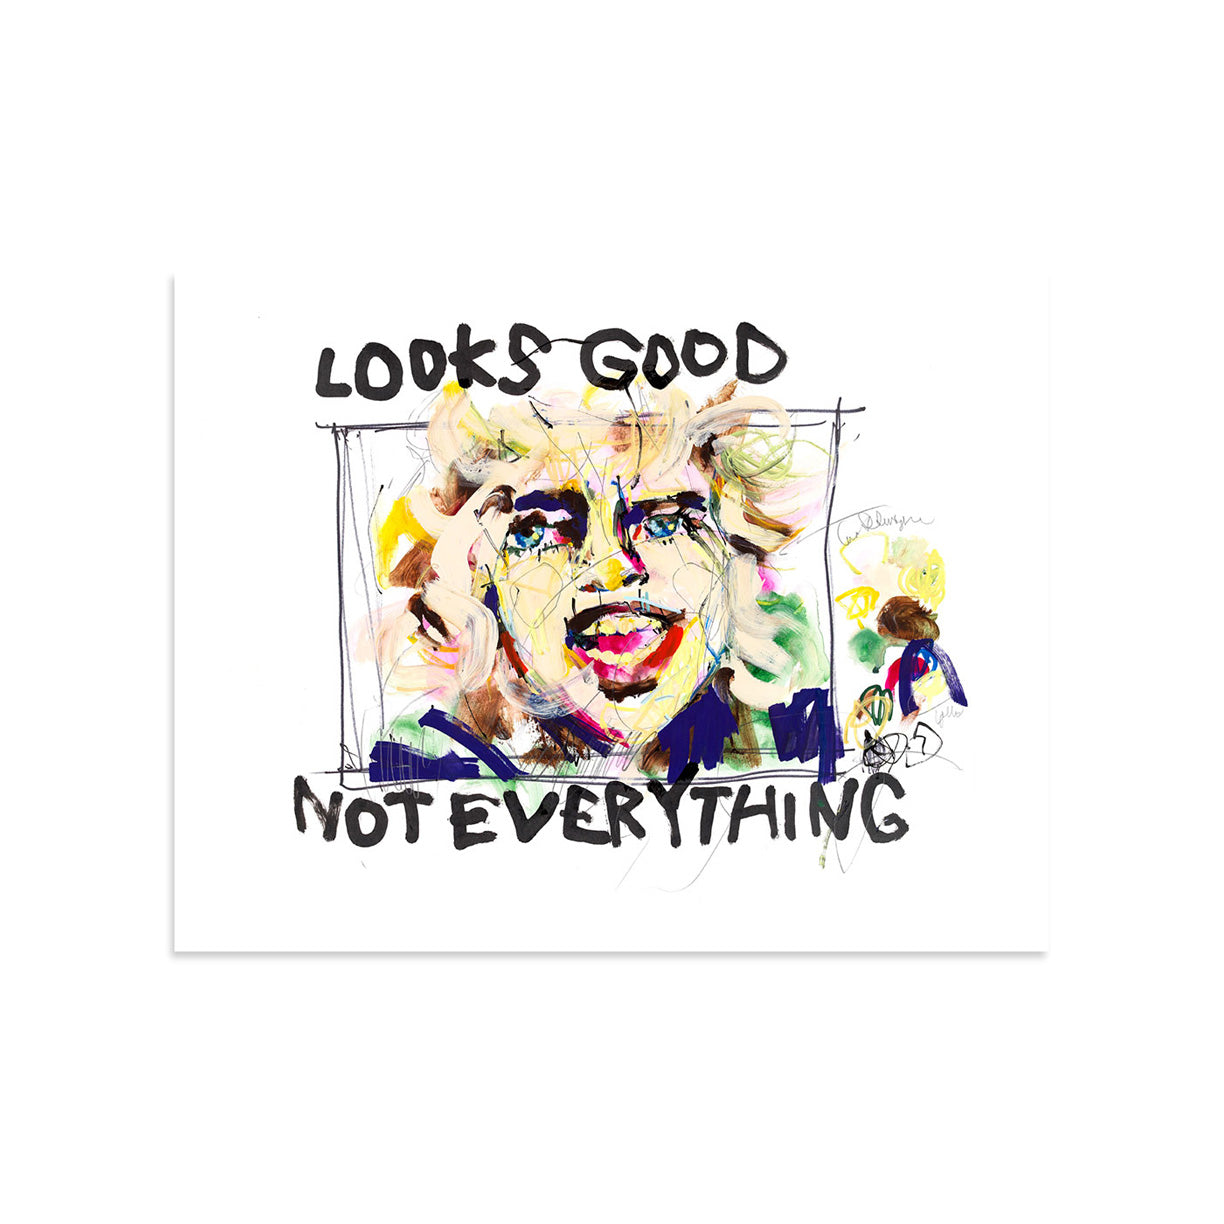 Looks Good Not Everything by Hannah Hooper | Print | Poster Child Prints